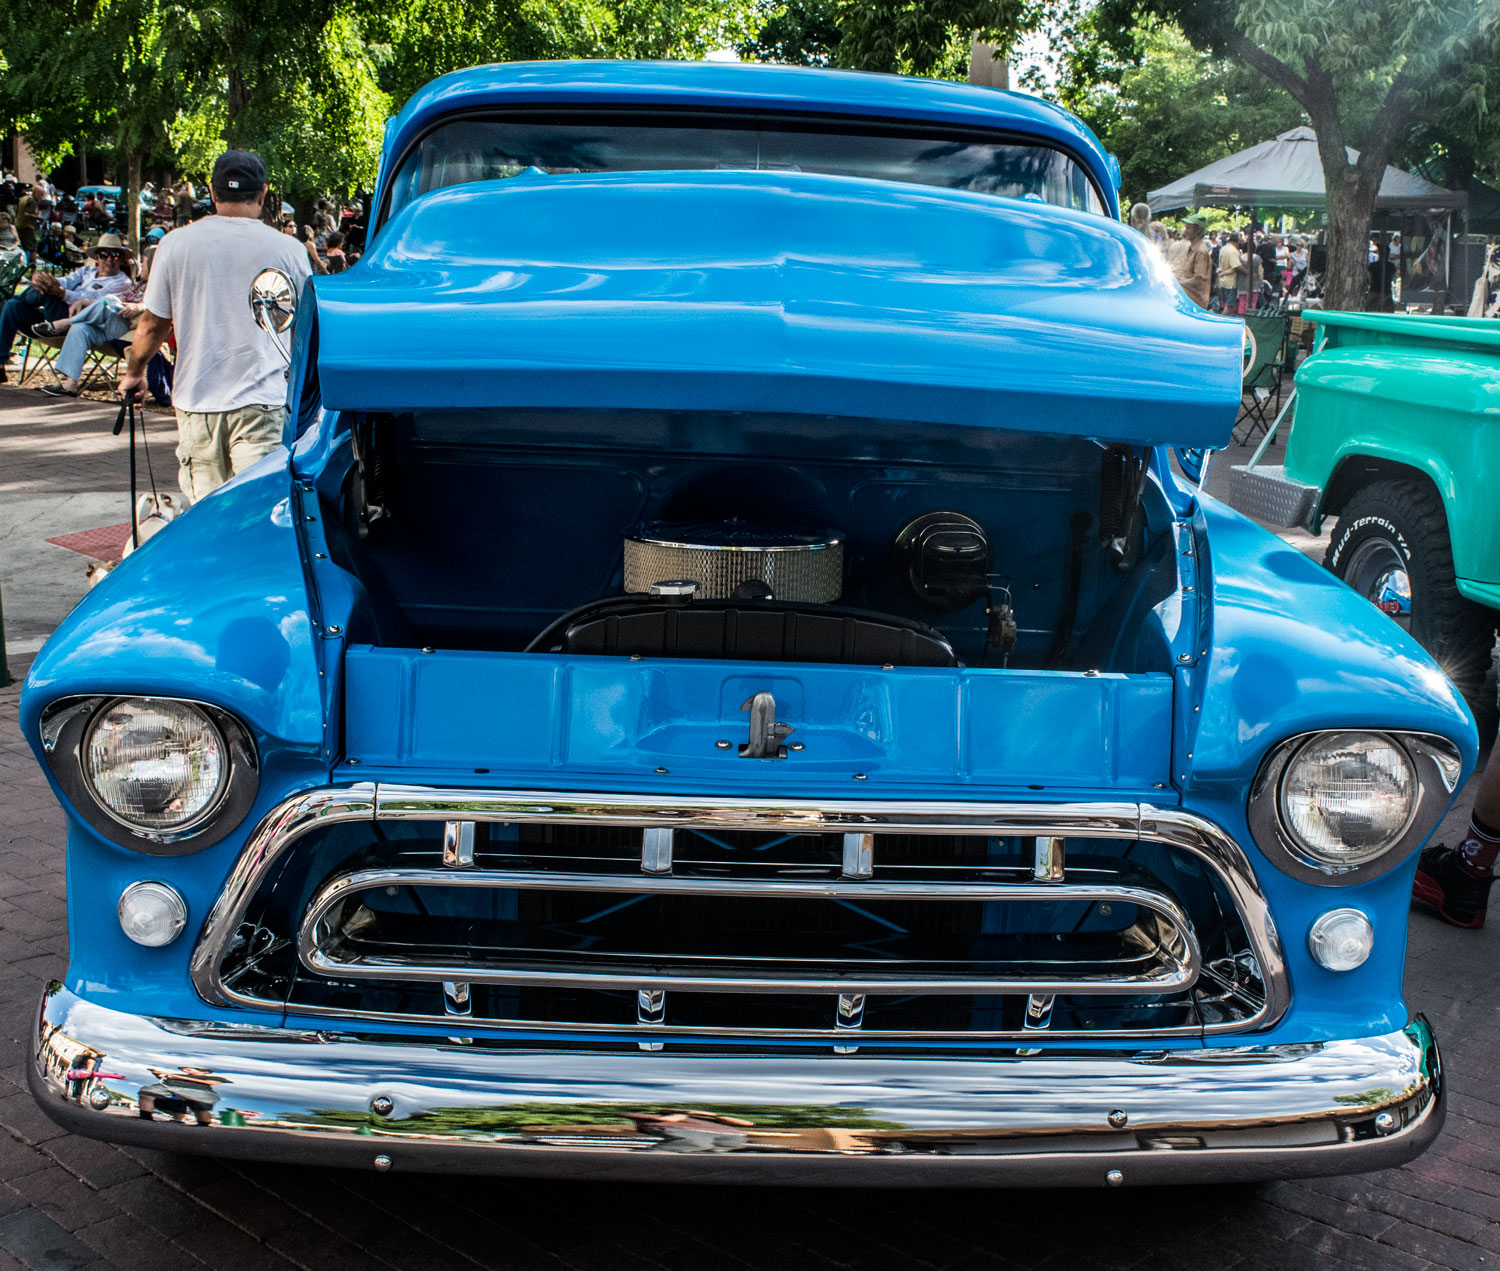 cars_bandstand_071516_0070